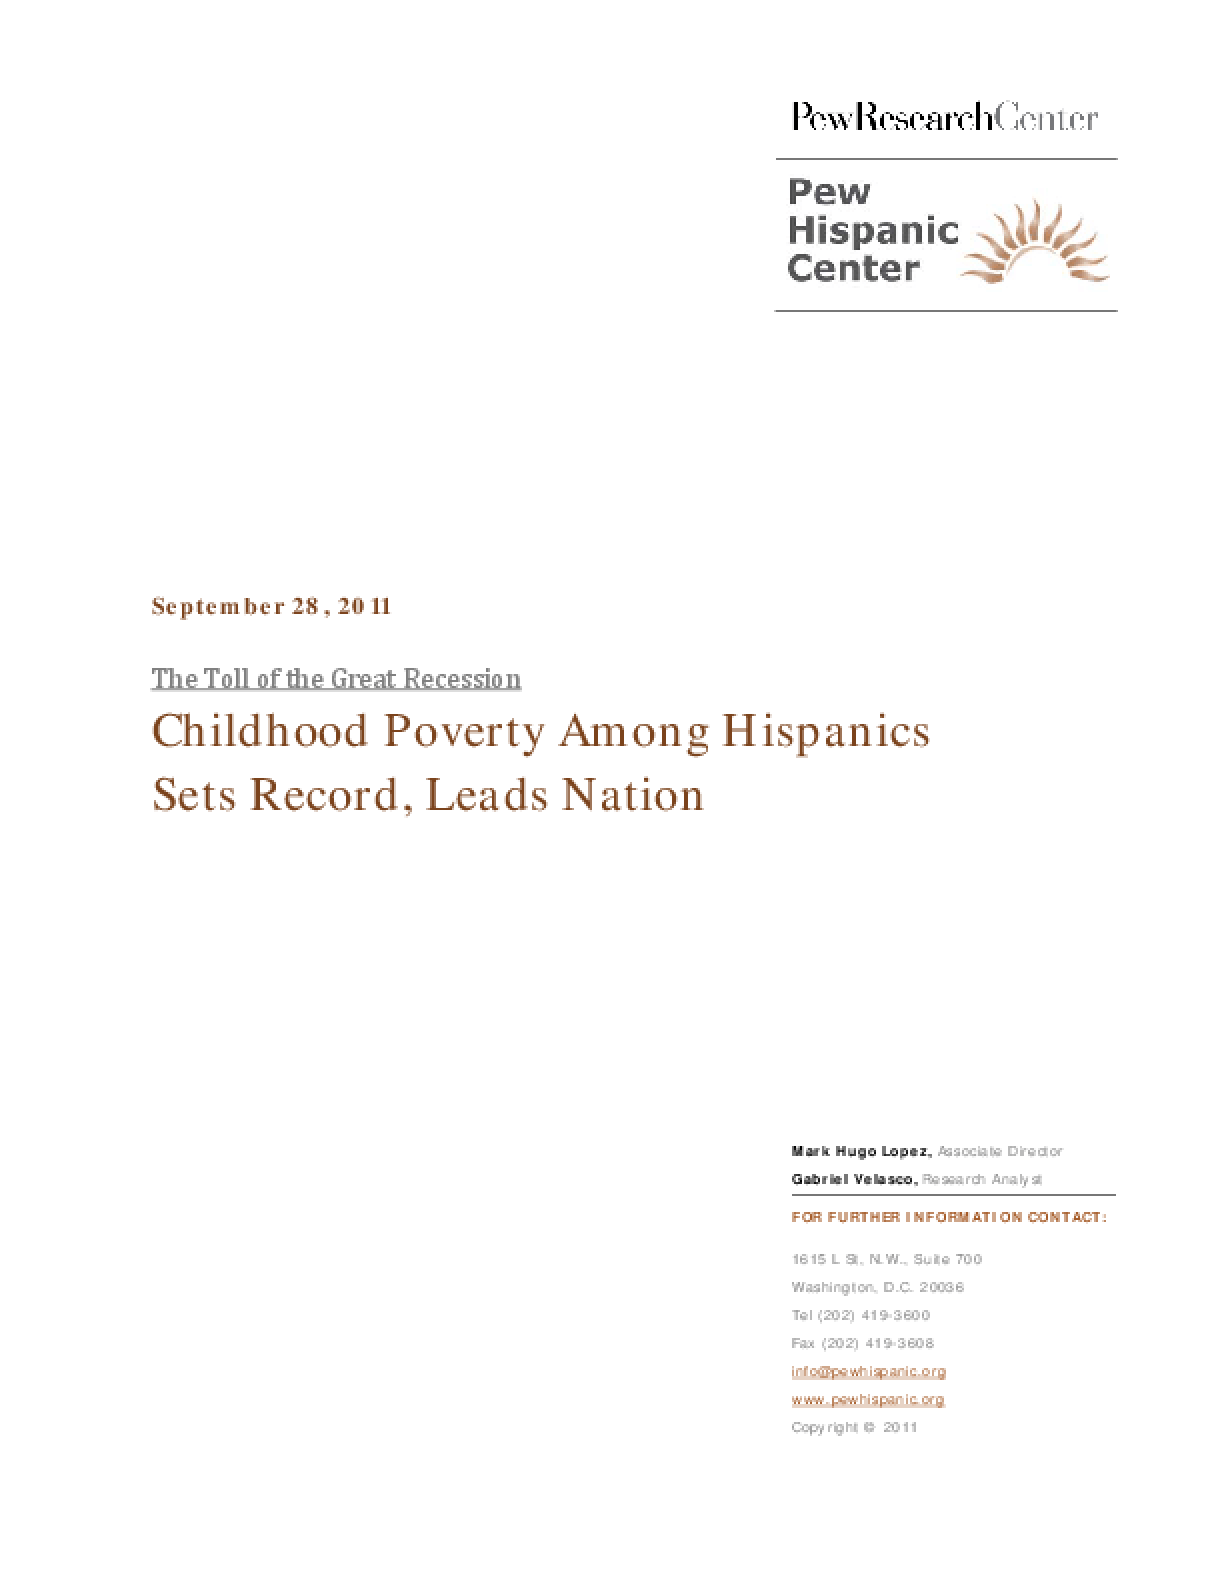 The Toll of the Great Recession: Childhood Poverty Among Hispanics Sets Record, Leads Nation